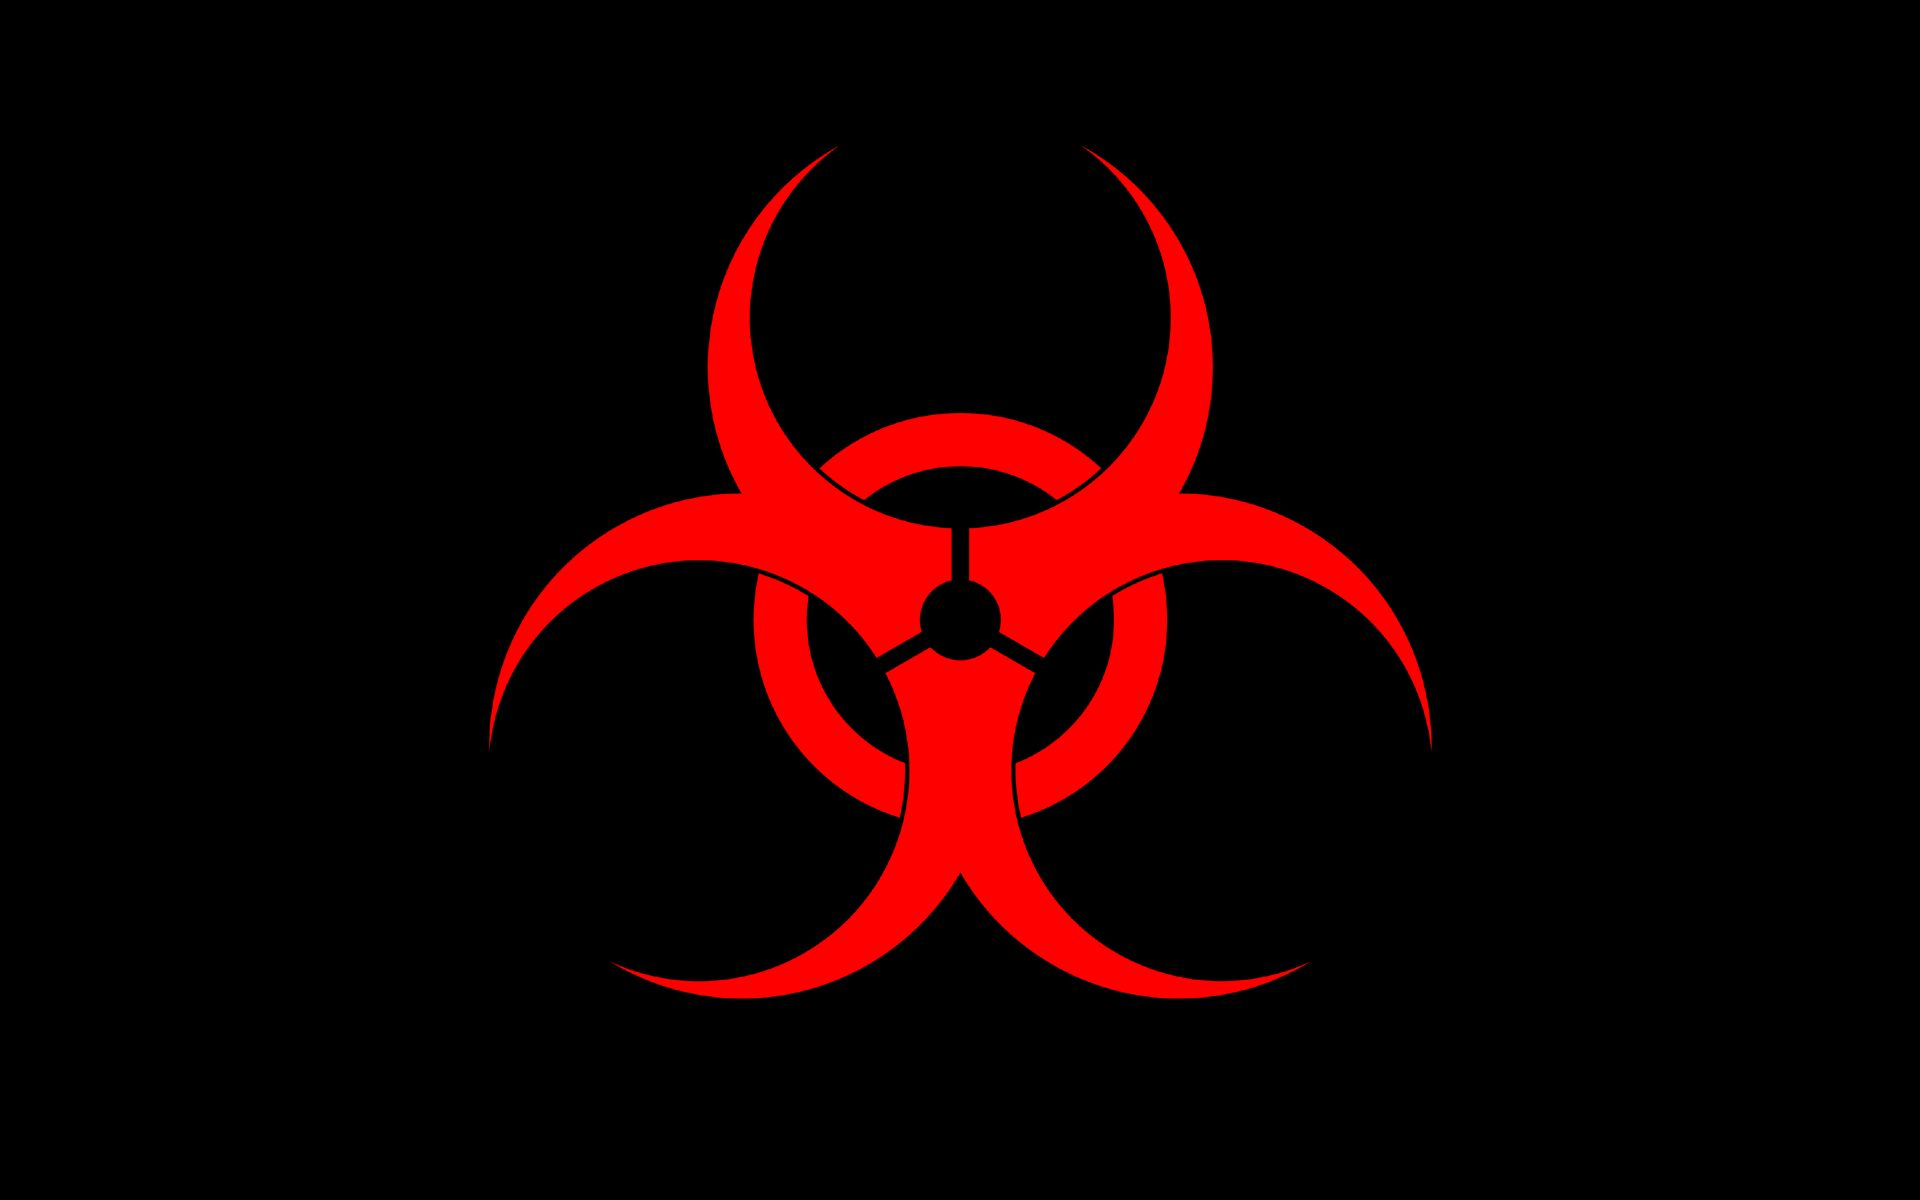 biohazard symbol black - photo #8